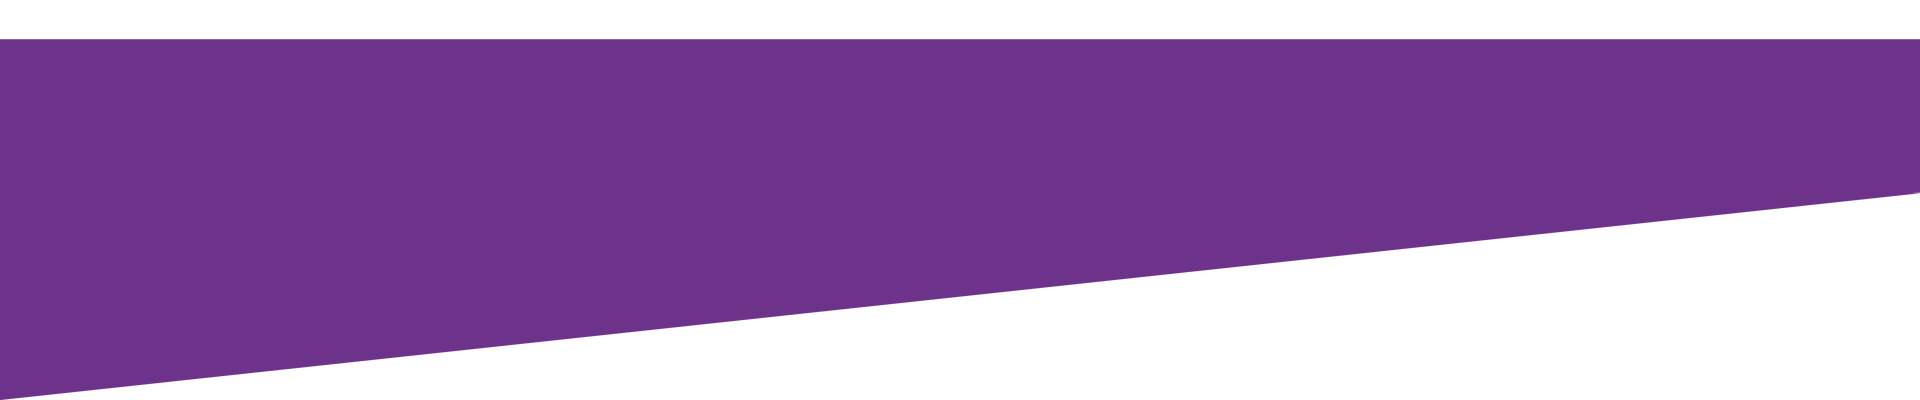 Purple_triangle.png